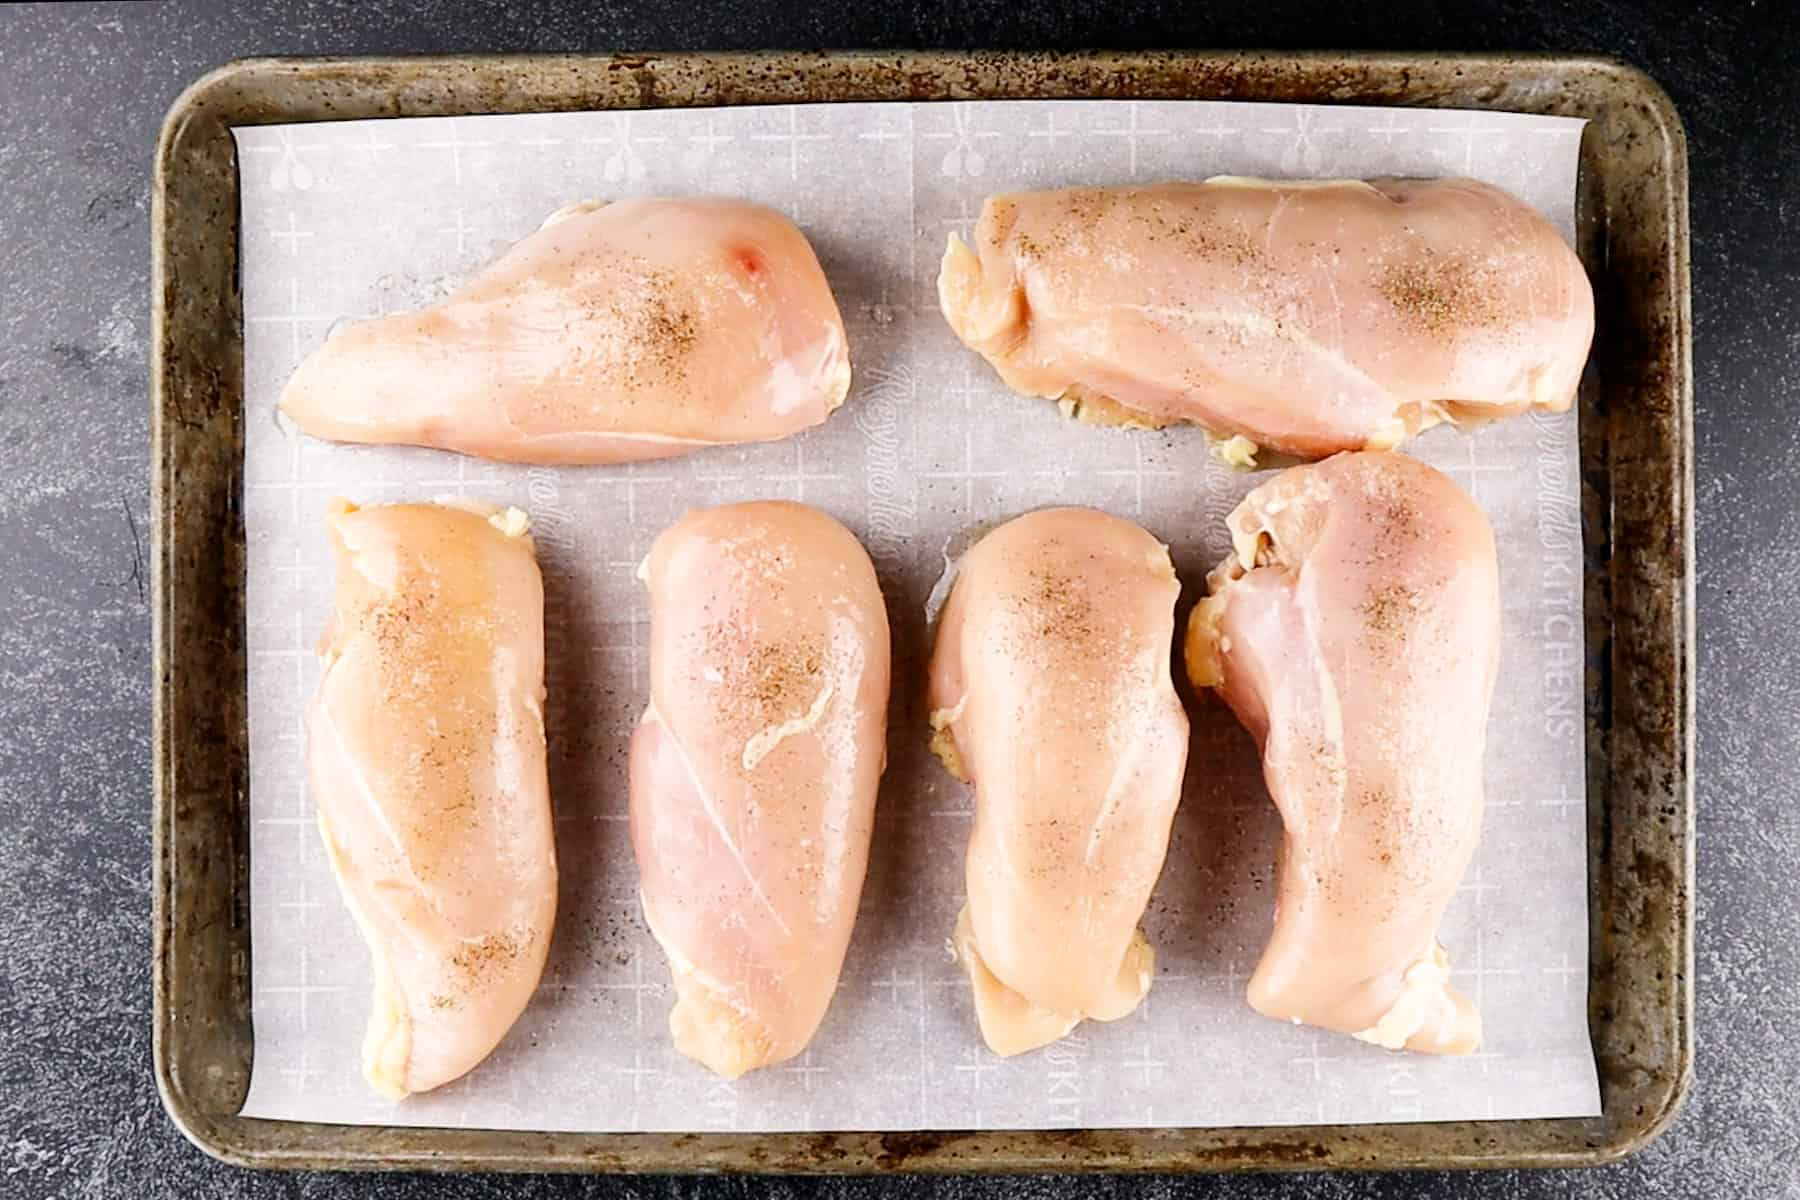 chicken breasts on baking sheet uncooked